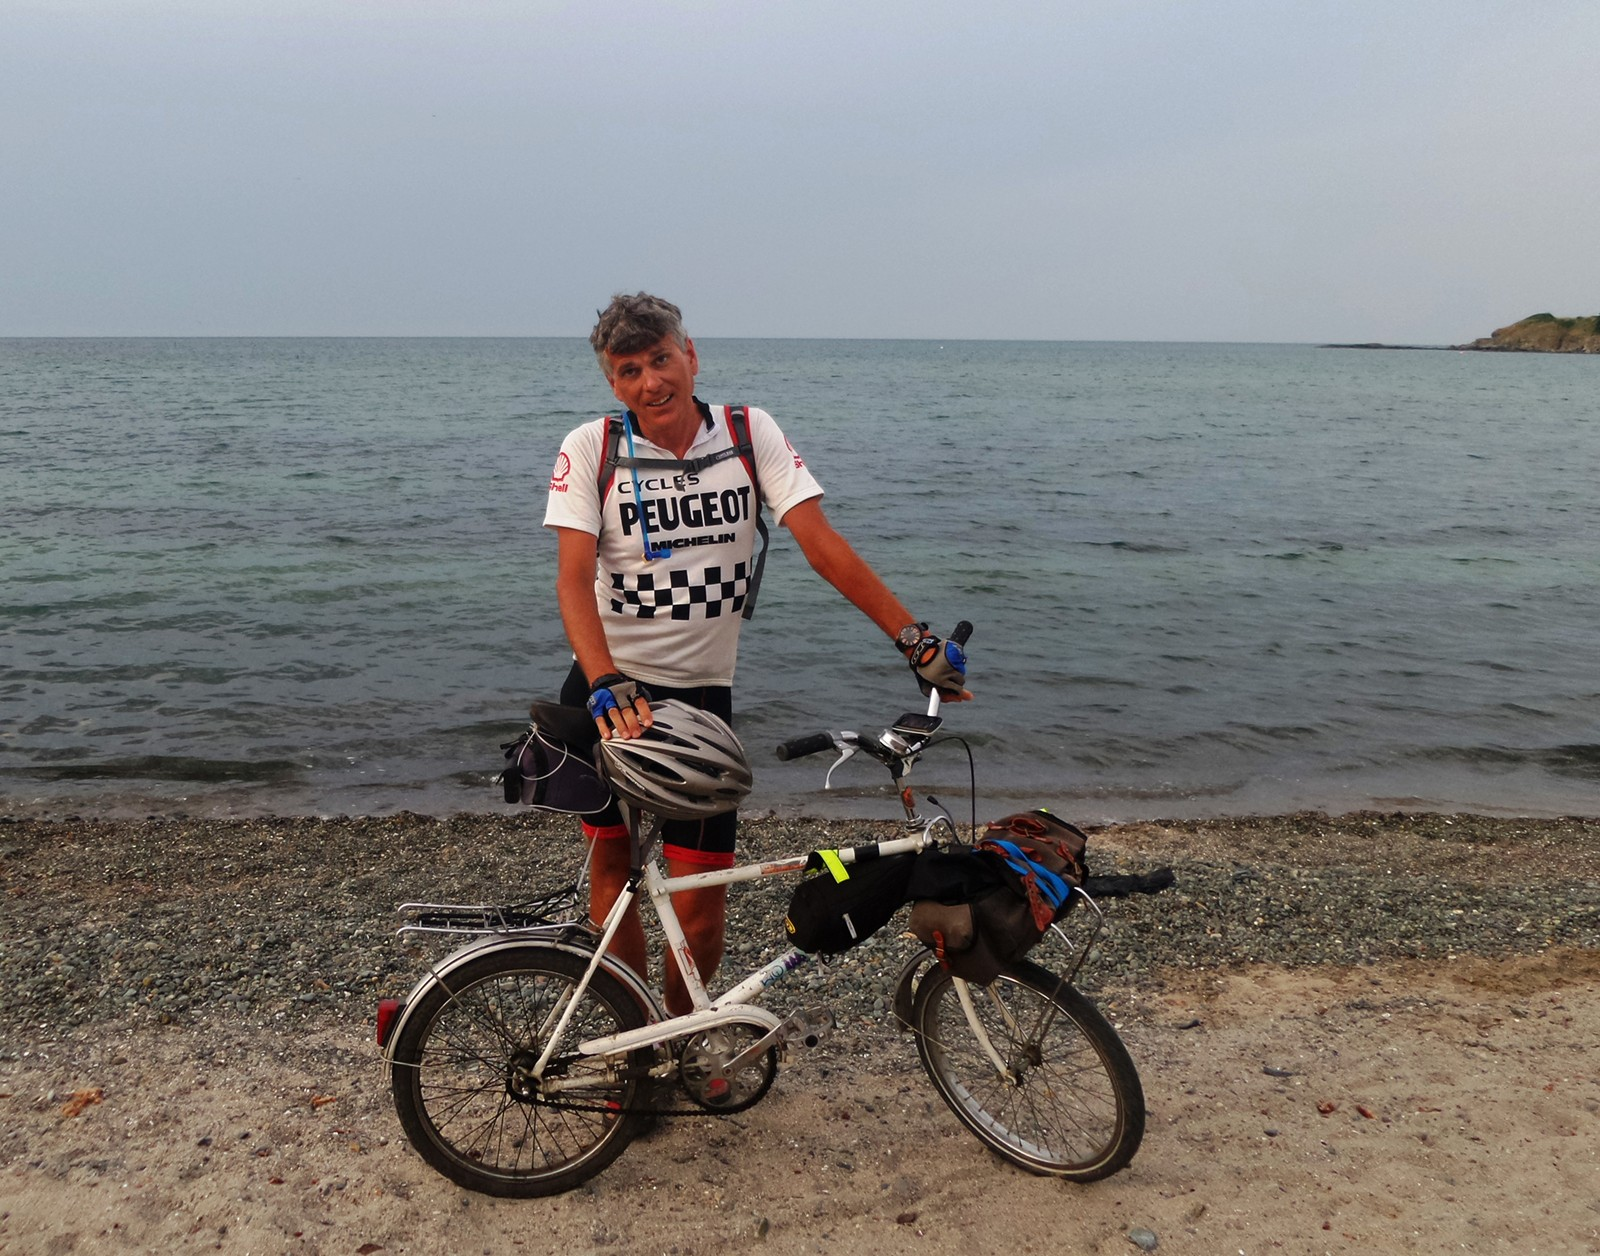 Day 87 sees the finish line – sheer relief courses through both his frame, and his bike's